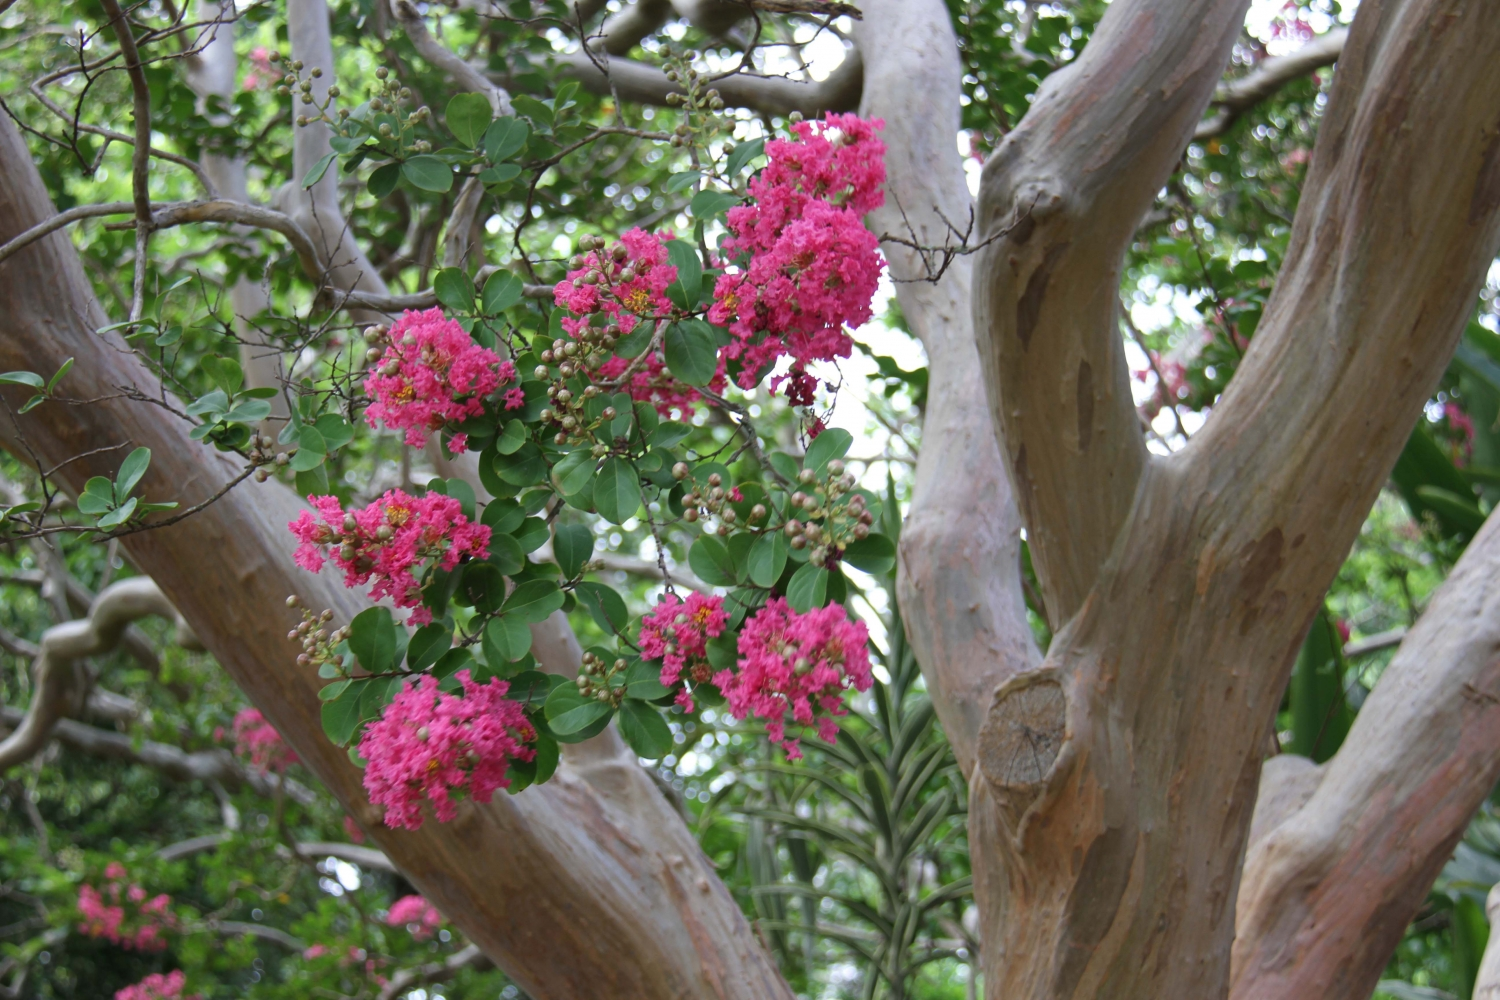 Crepe myrtle flowers against the tree's patterned bark